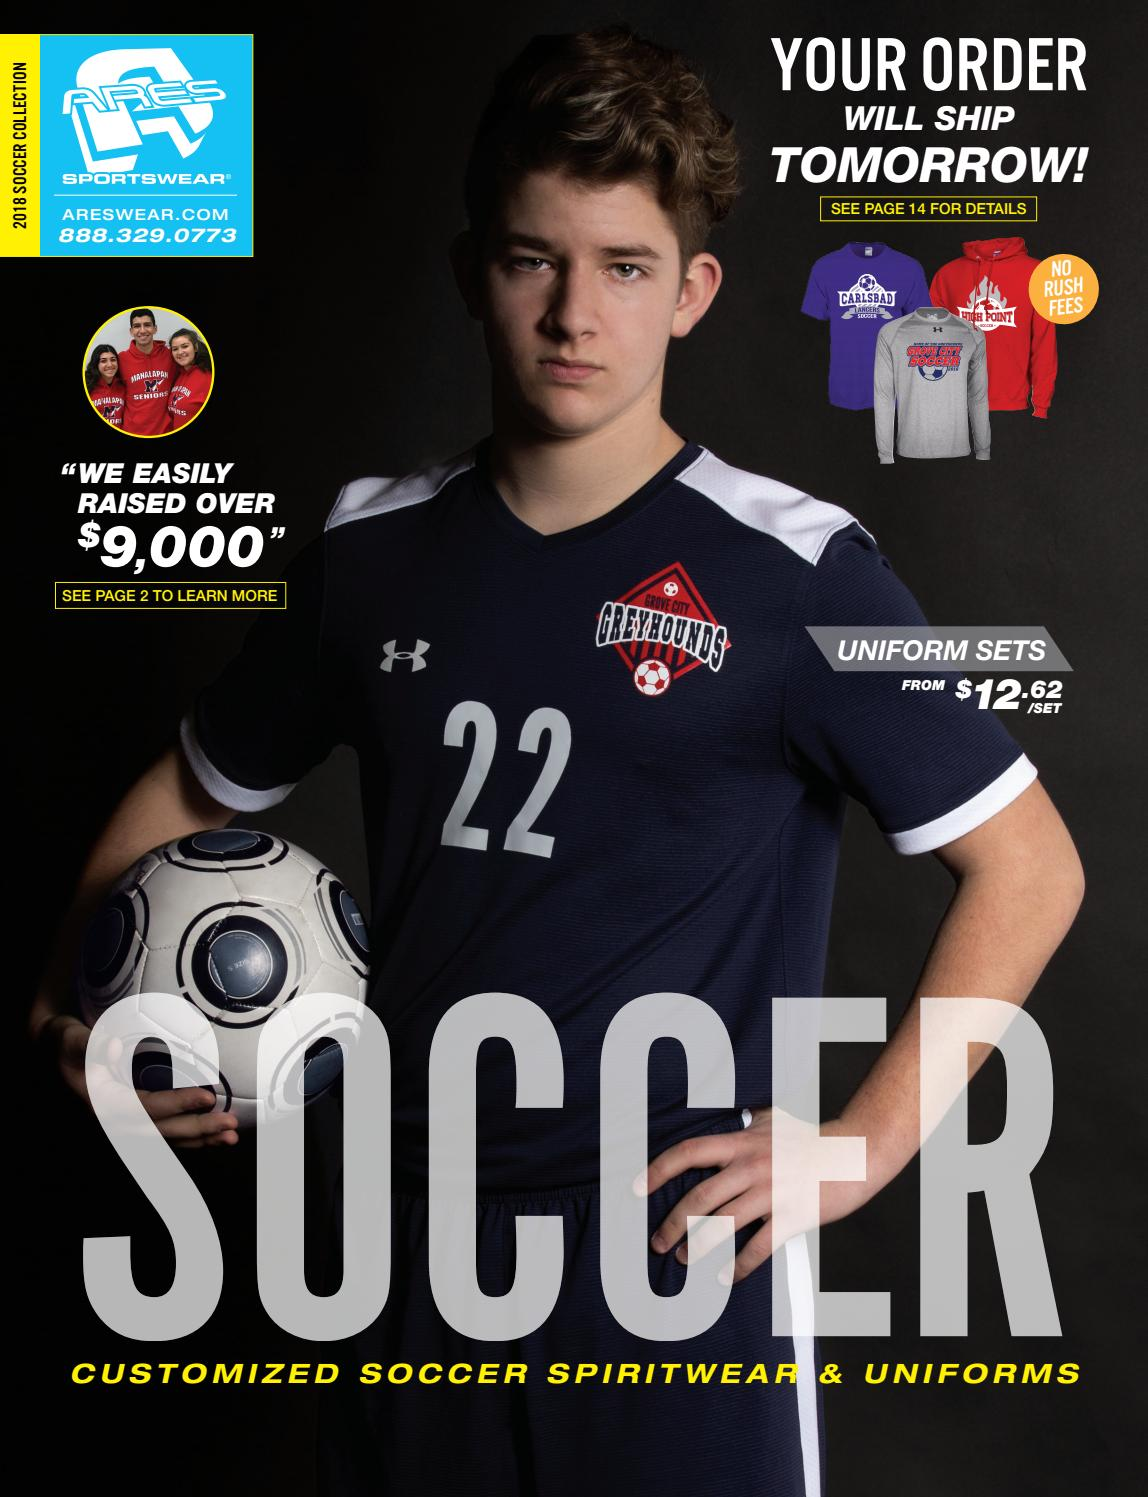 65469040a08 2018 Ares Sportswear Soccer Catalog by Ares Sportswear - issuu